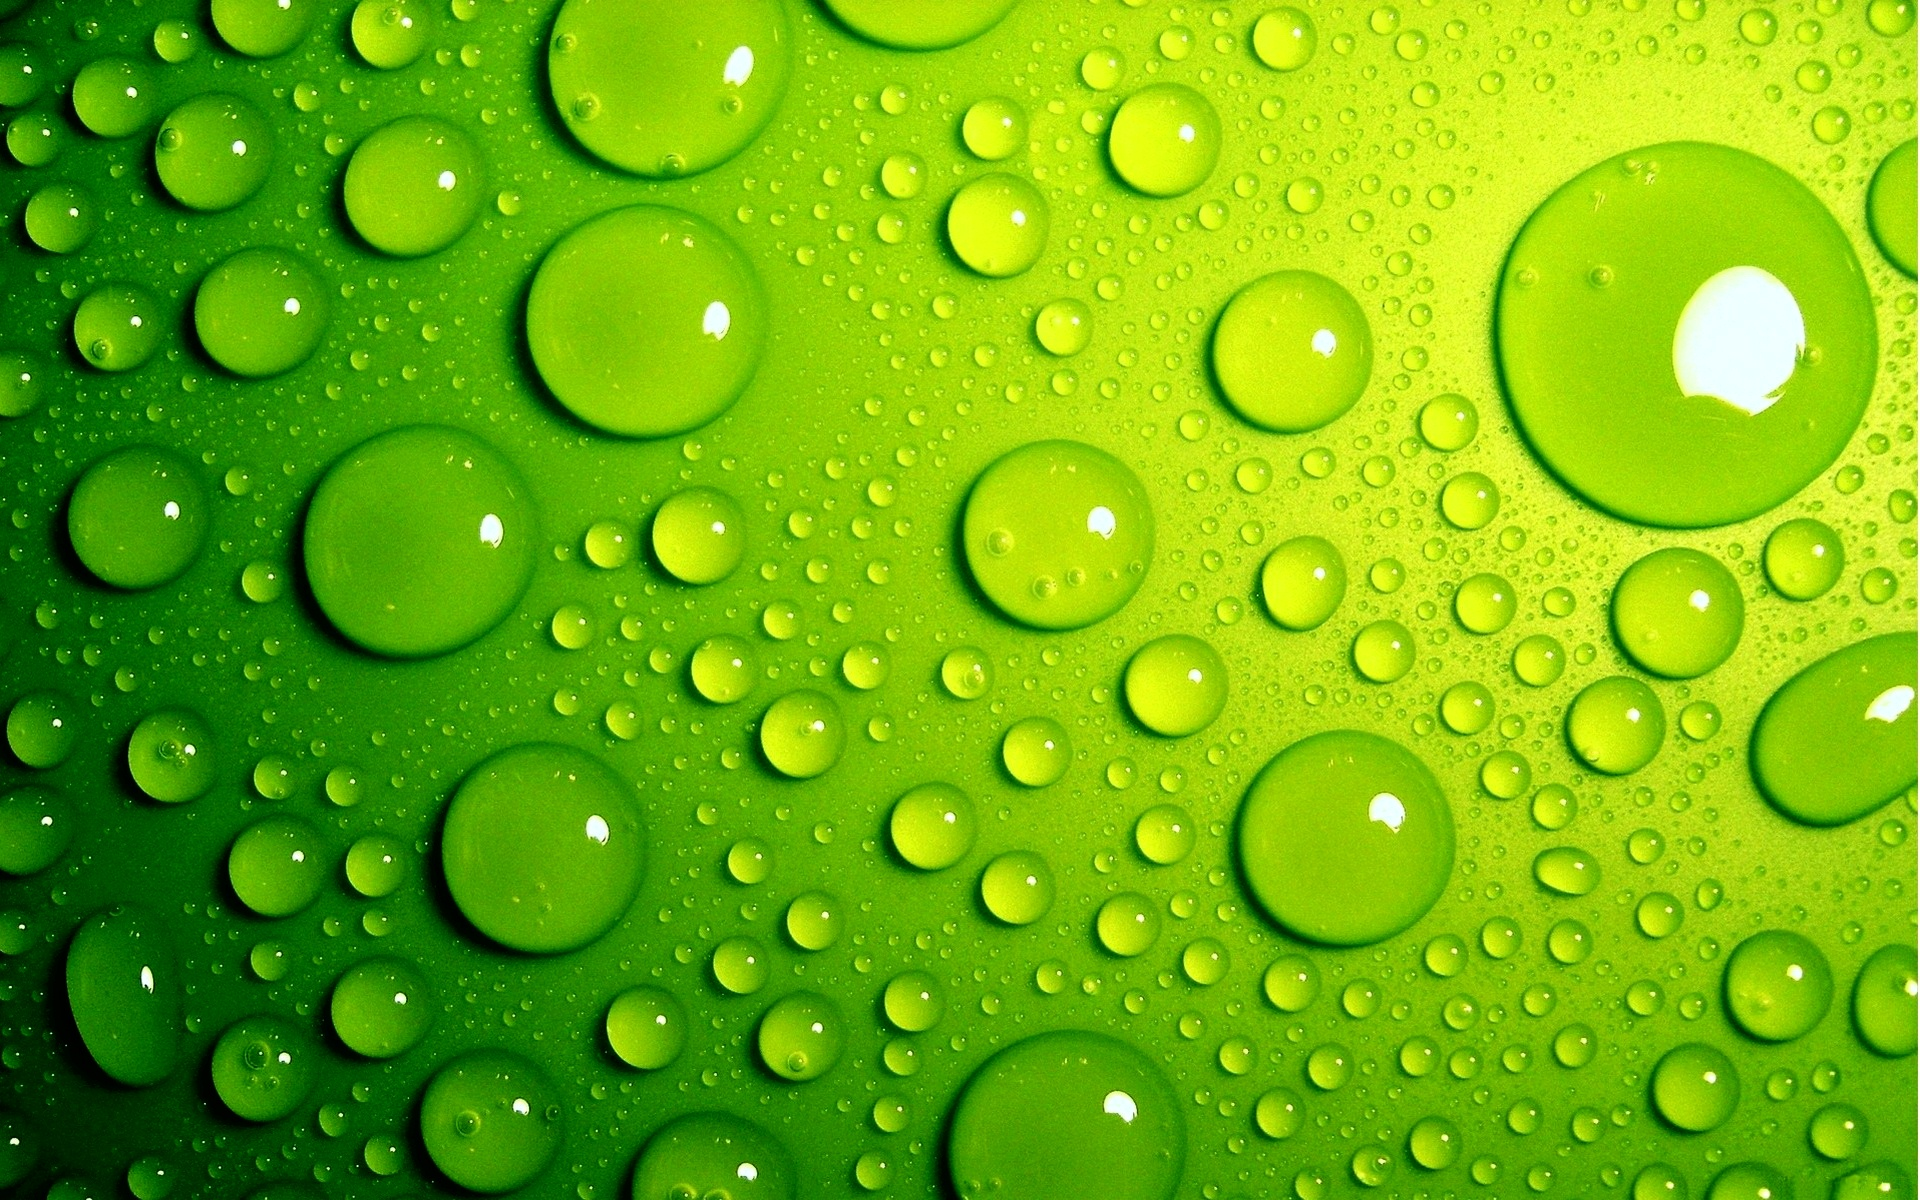 Green Bubbles